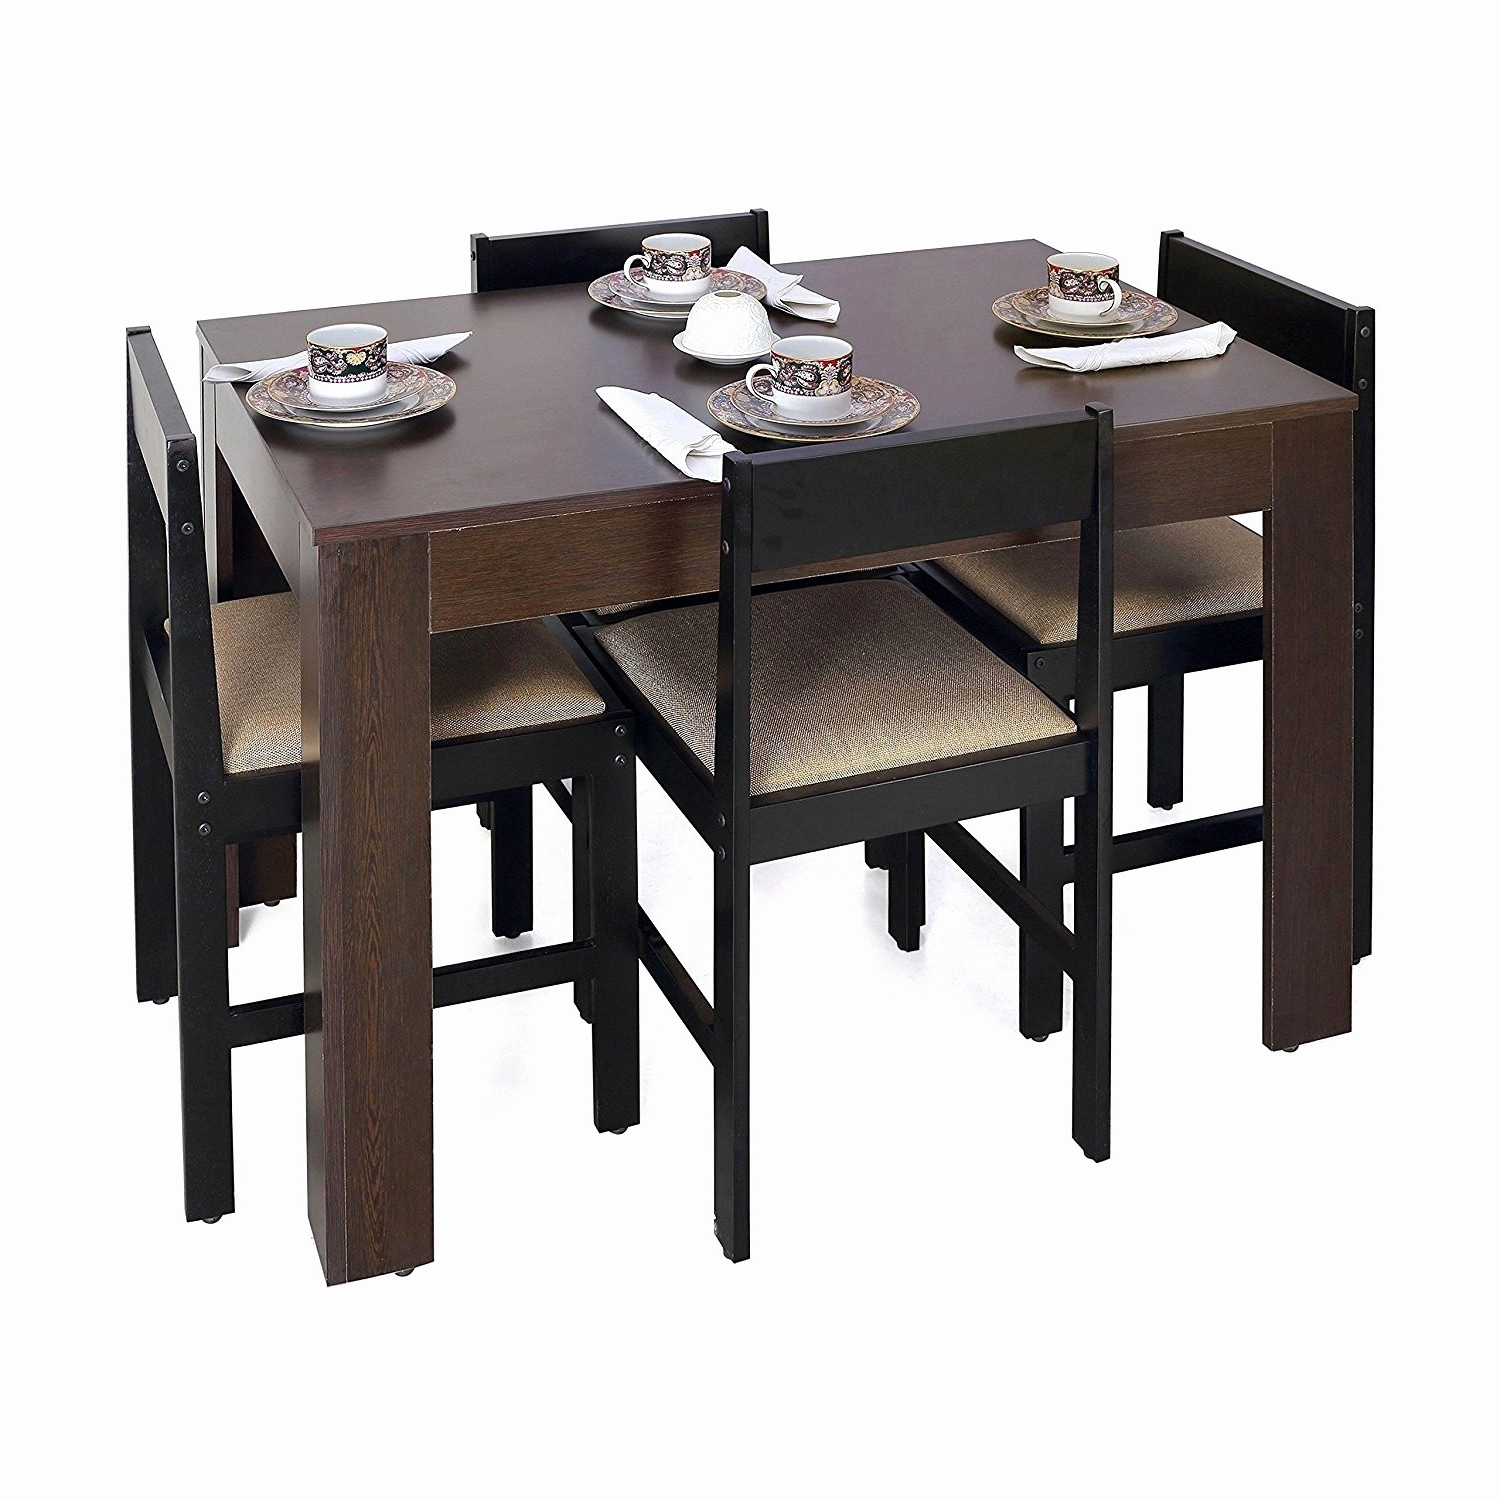 Macie Round Dining Tables Pertaining To Well Known Fetching Circle Kitchen Table With Macie Round Dining Table (View 8 of 25)